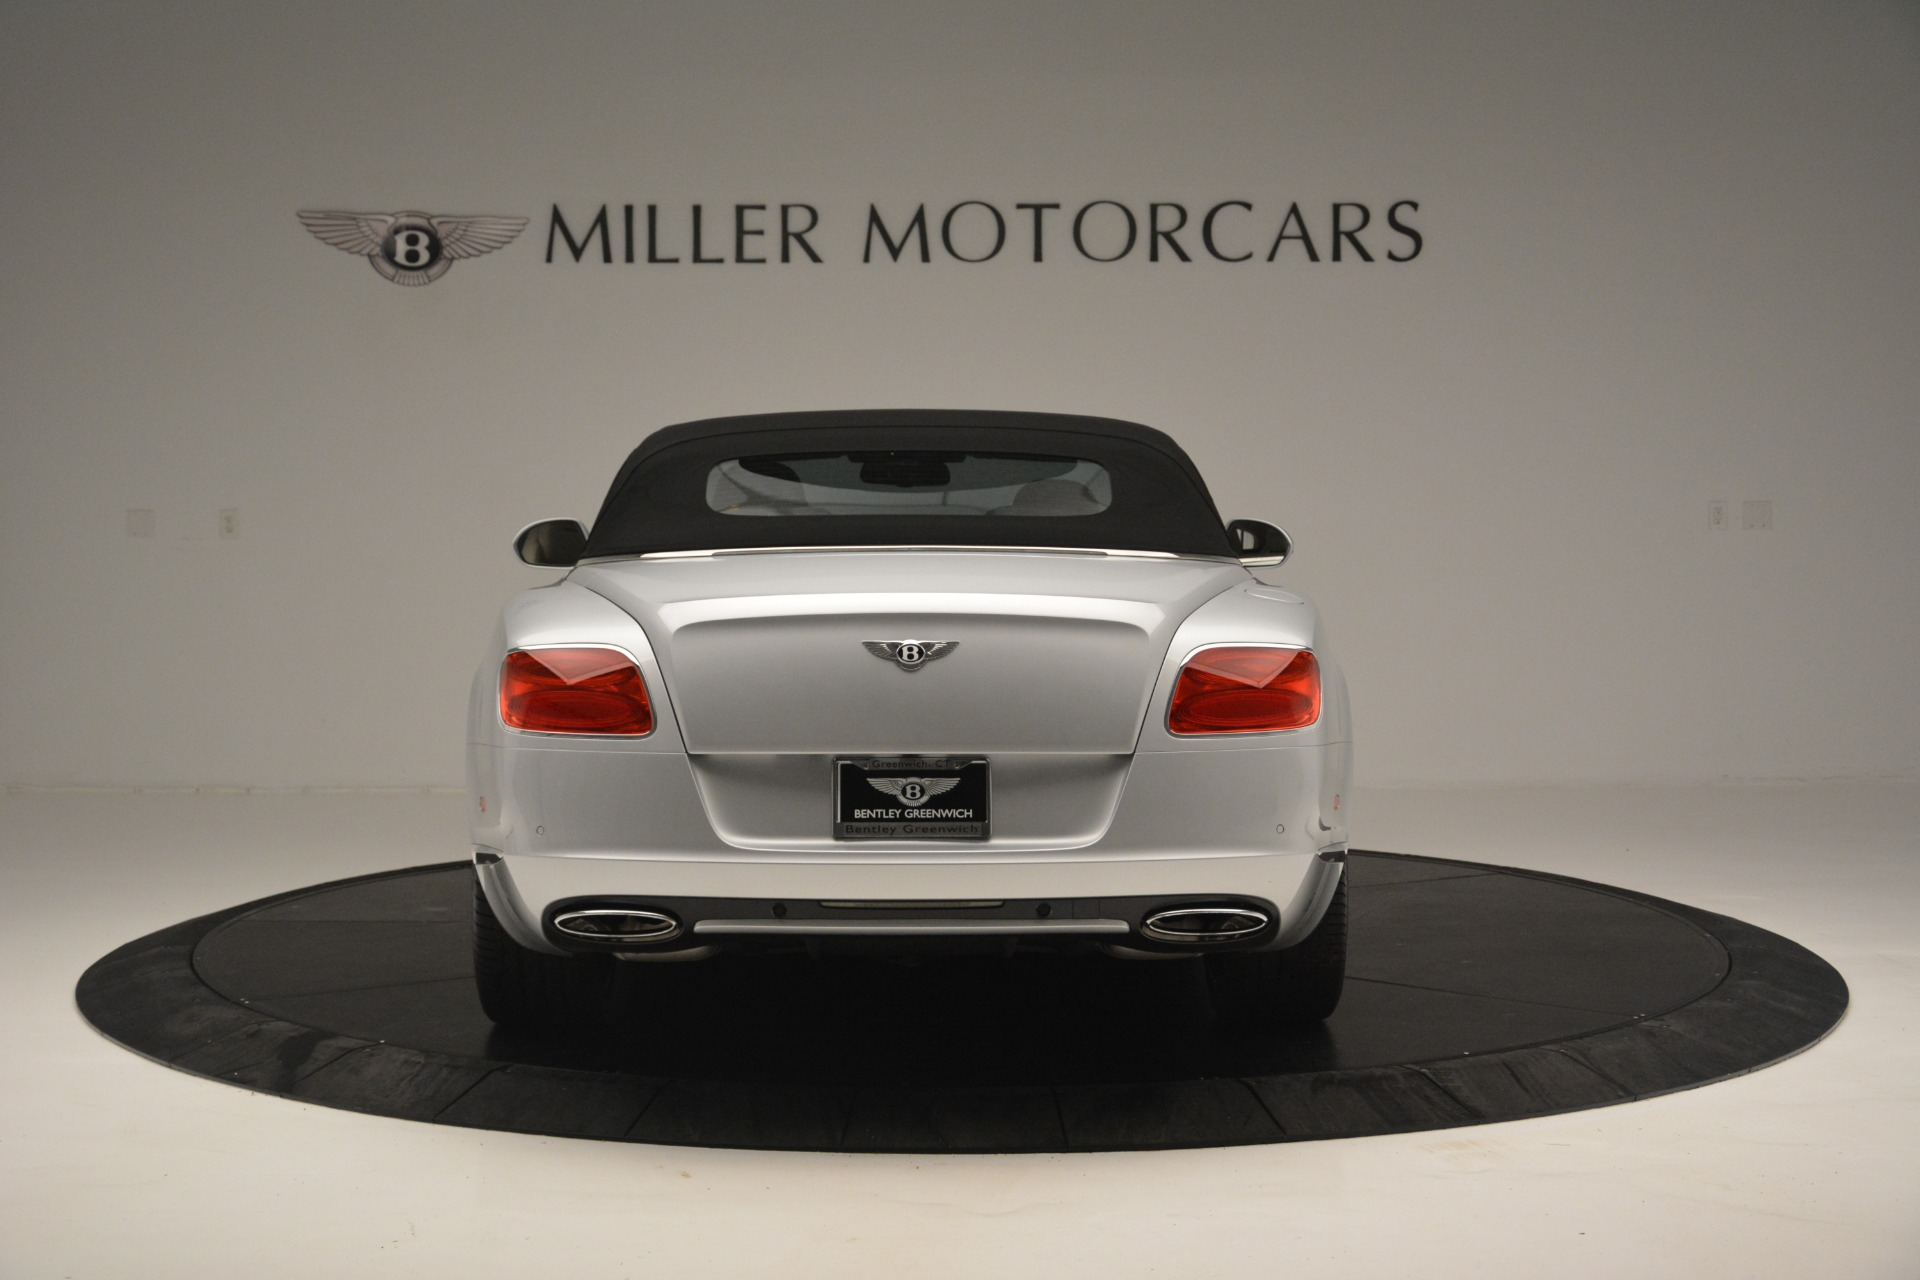 Used 2013 Bentley Continental GT W12 Le Mans Edition For Sale In Greenwich, CT 2519_p13